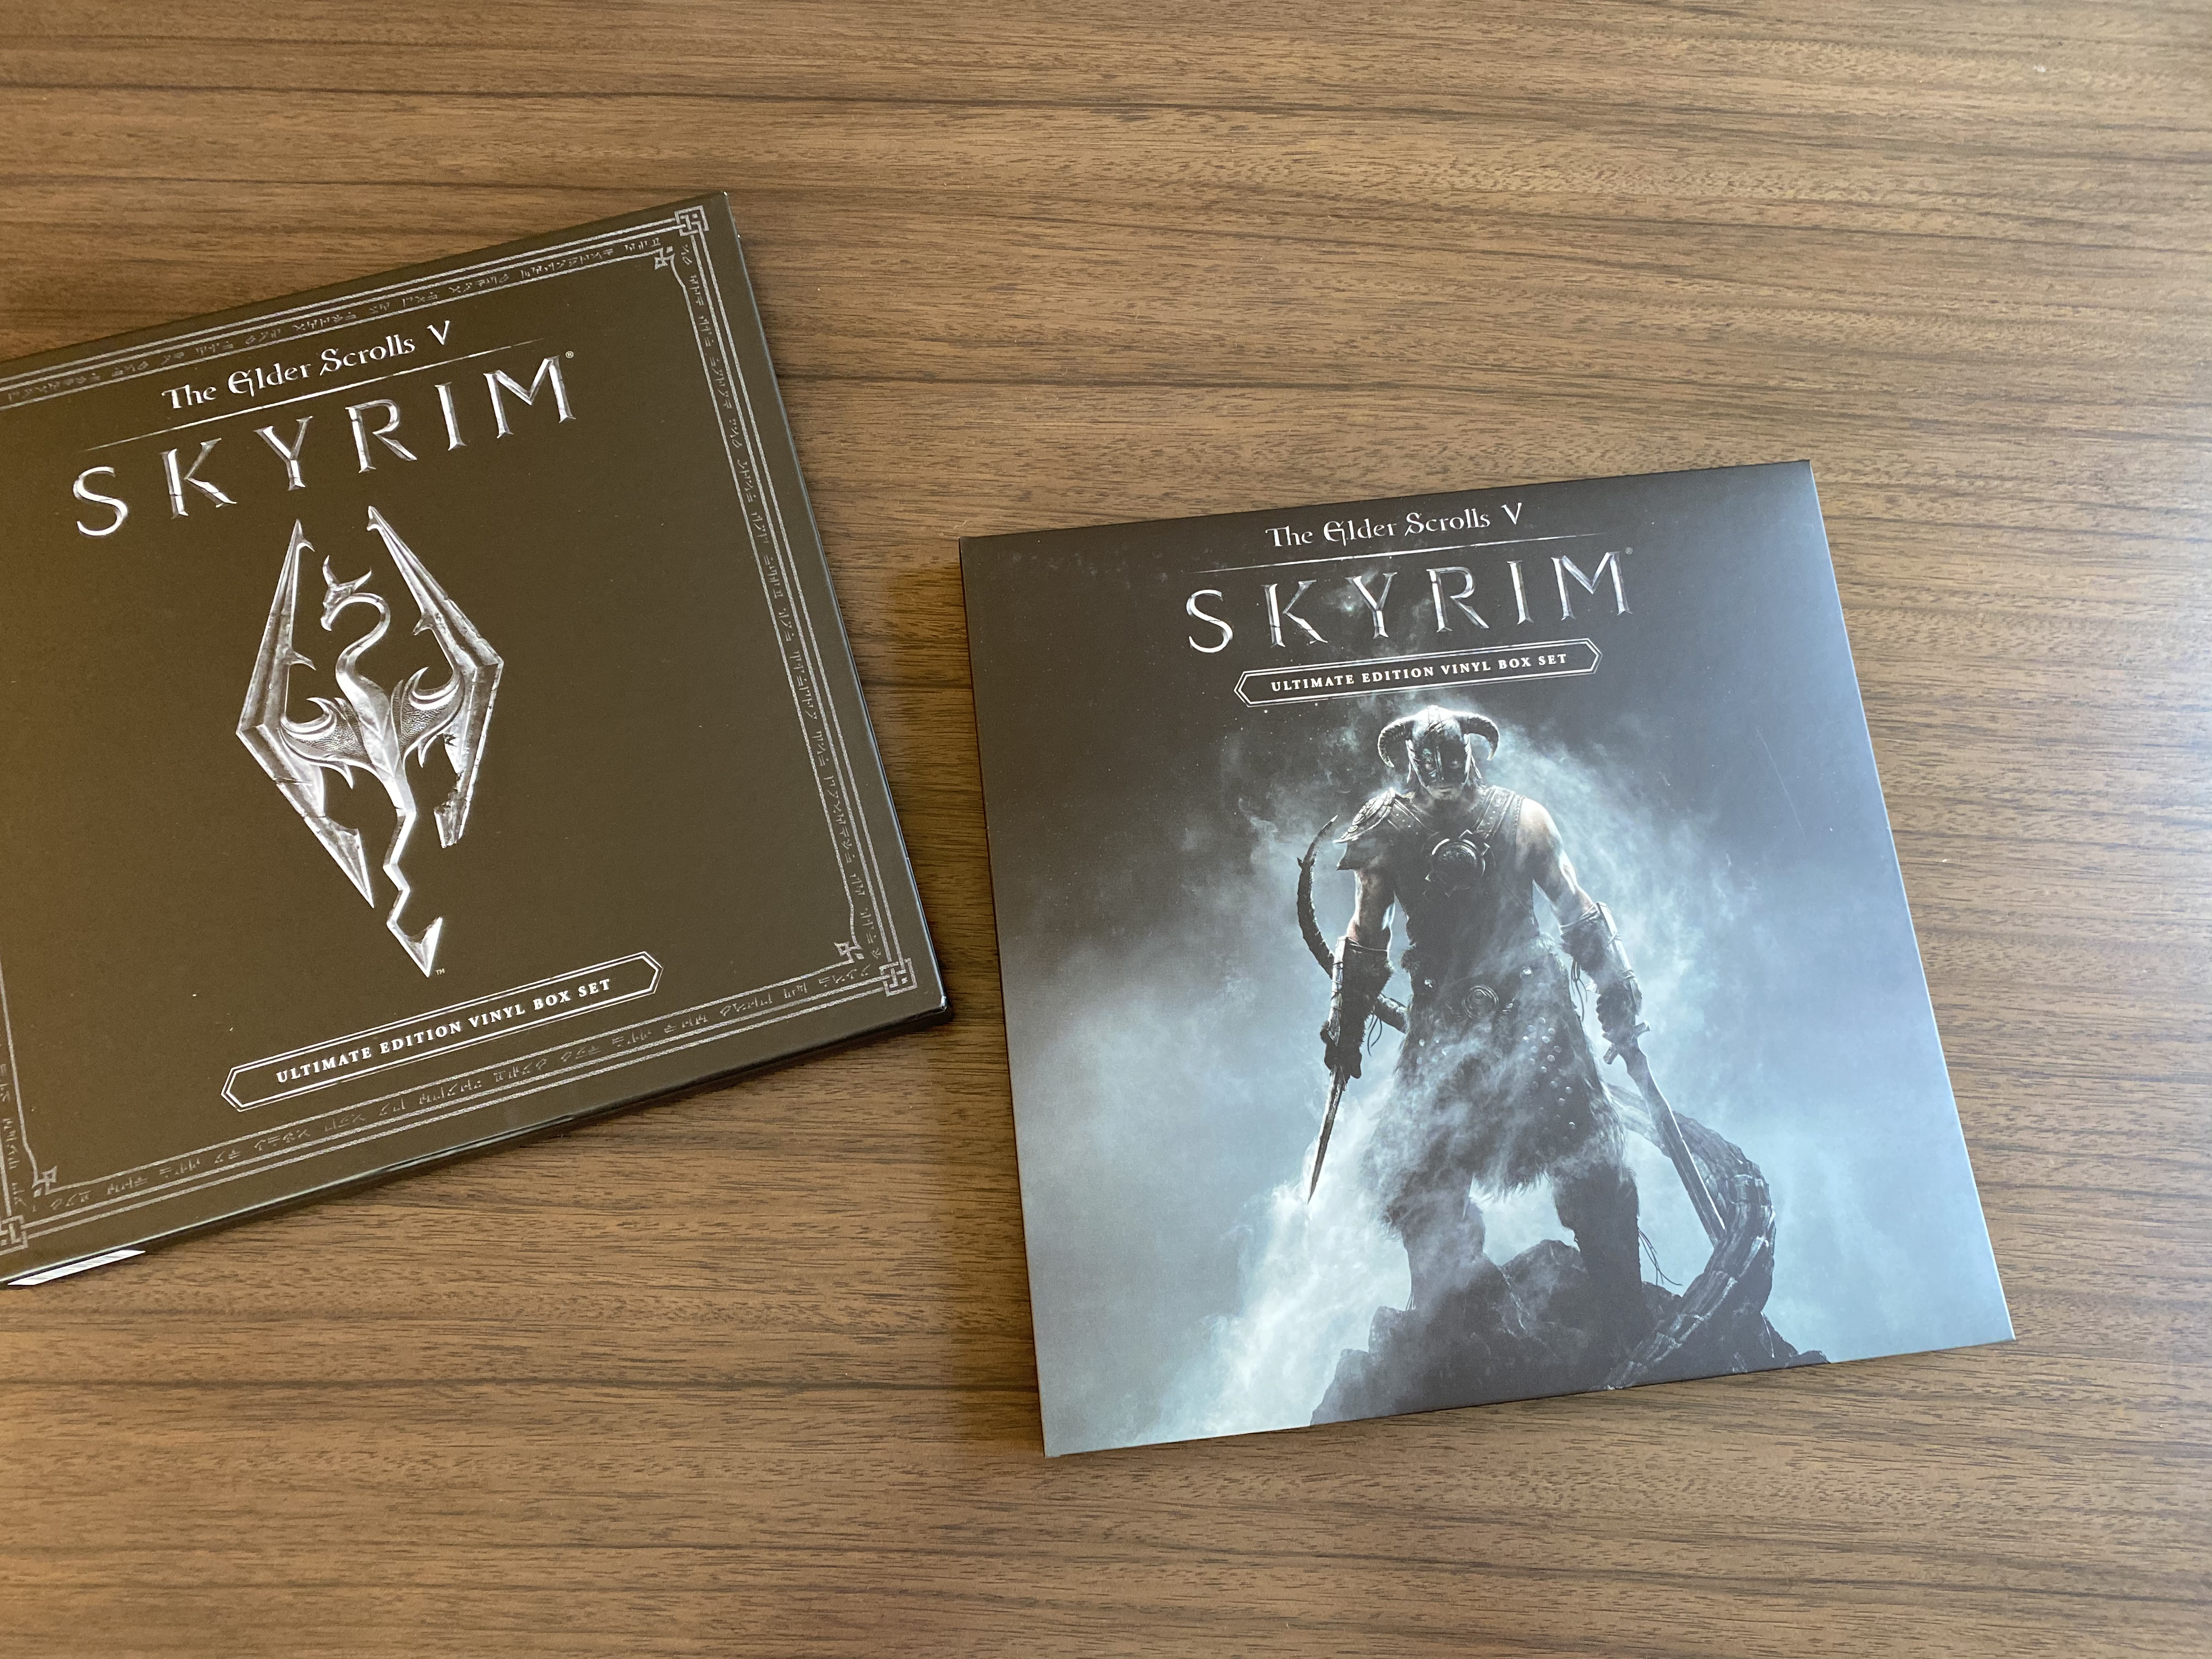 Kennon-Green Elder Scrolls V Skyrim Ultimate Edition Vinyl Box Set Sweet Roll Comic Con Limited LP - Pulling Out Inside Box